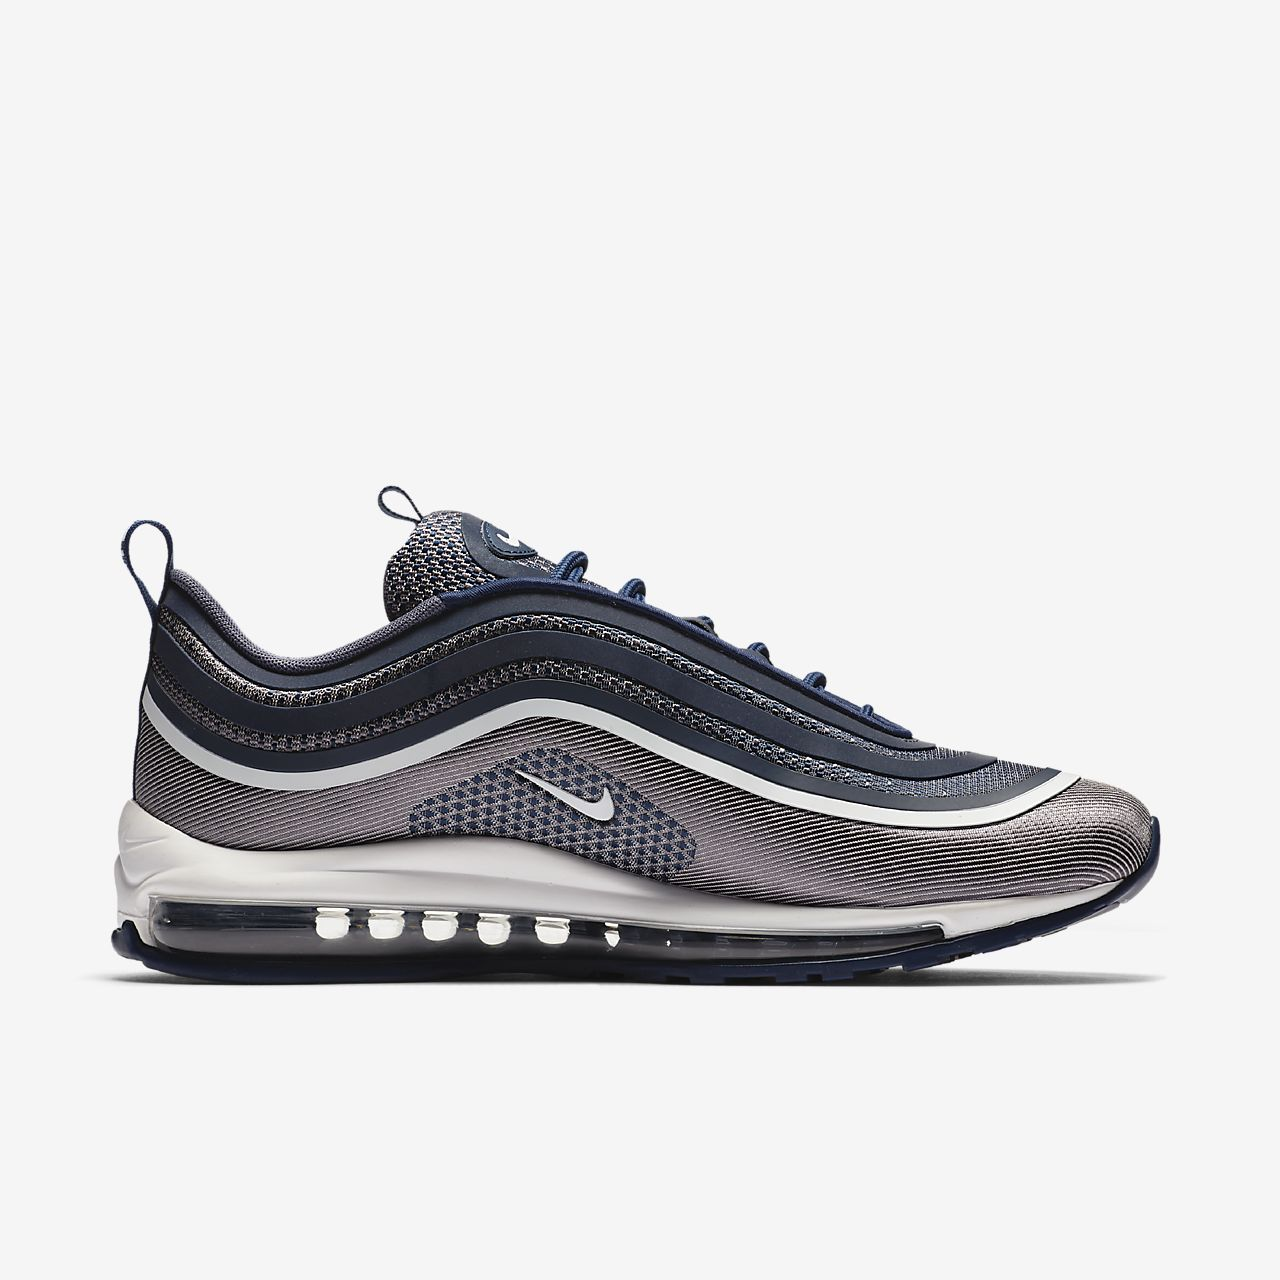 Women's Nike Air Max 97 Ultra '17 'Wolf Grey & Marina Blue' Release